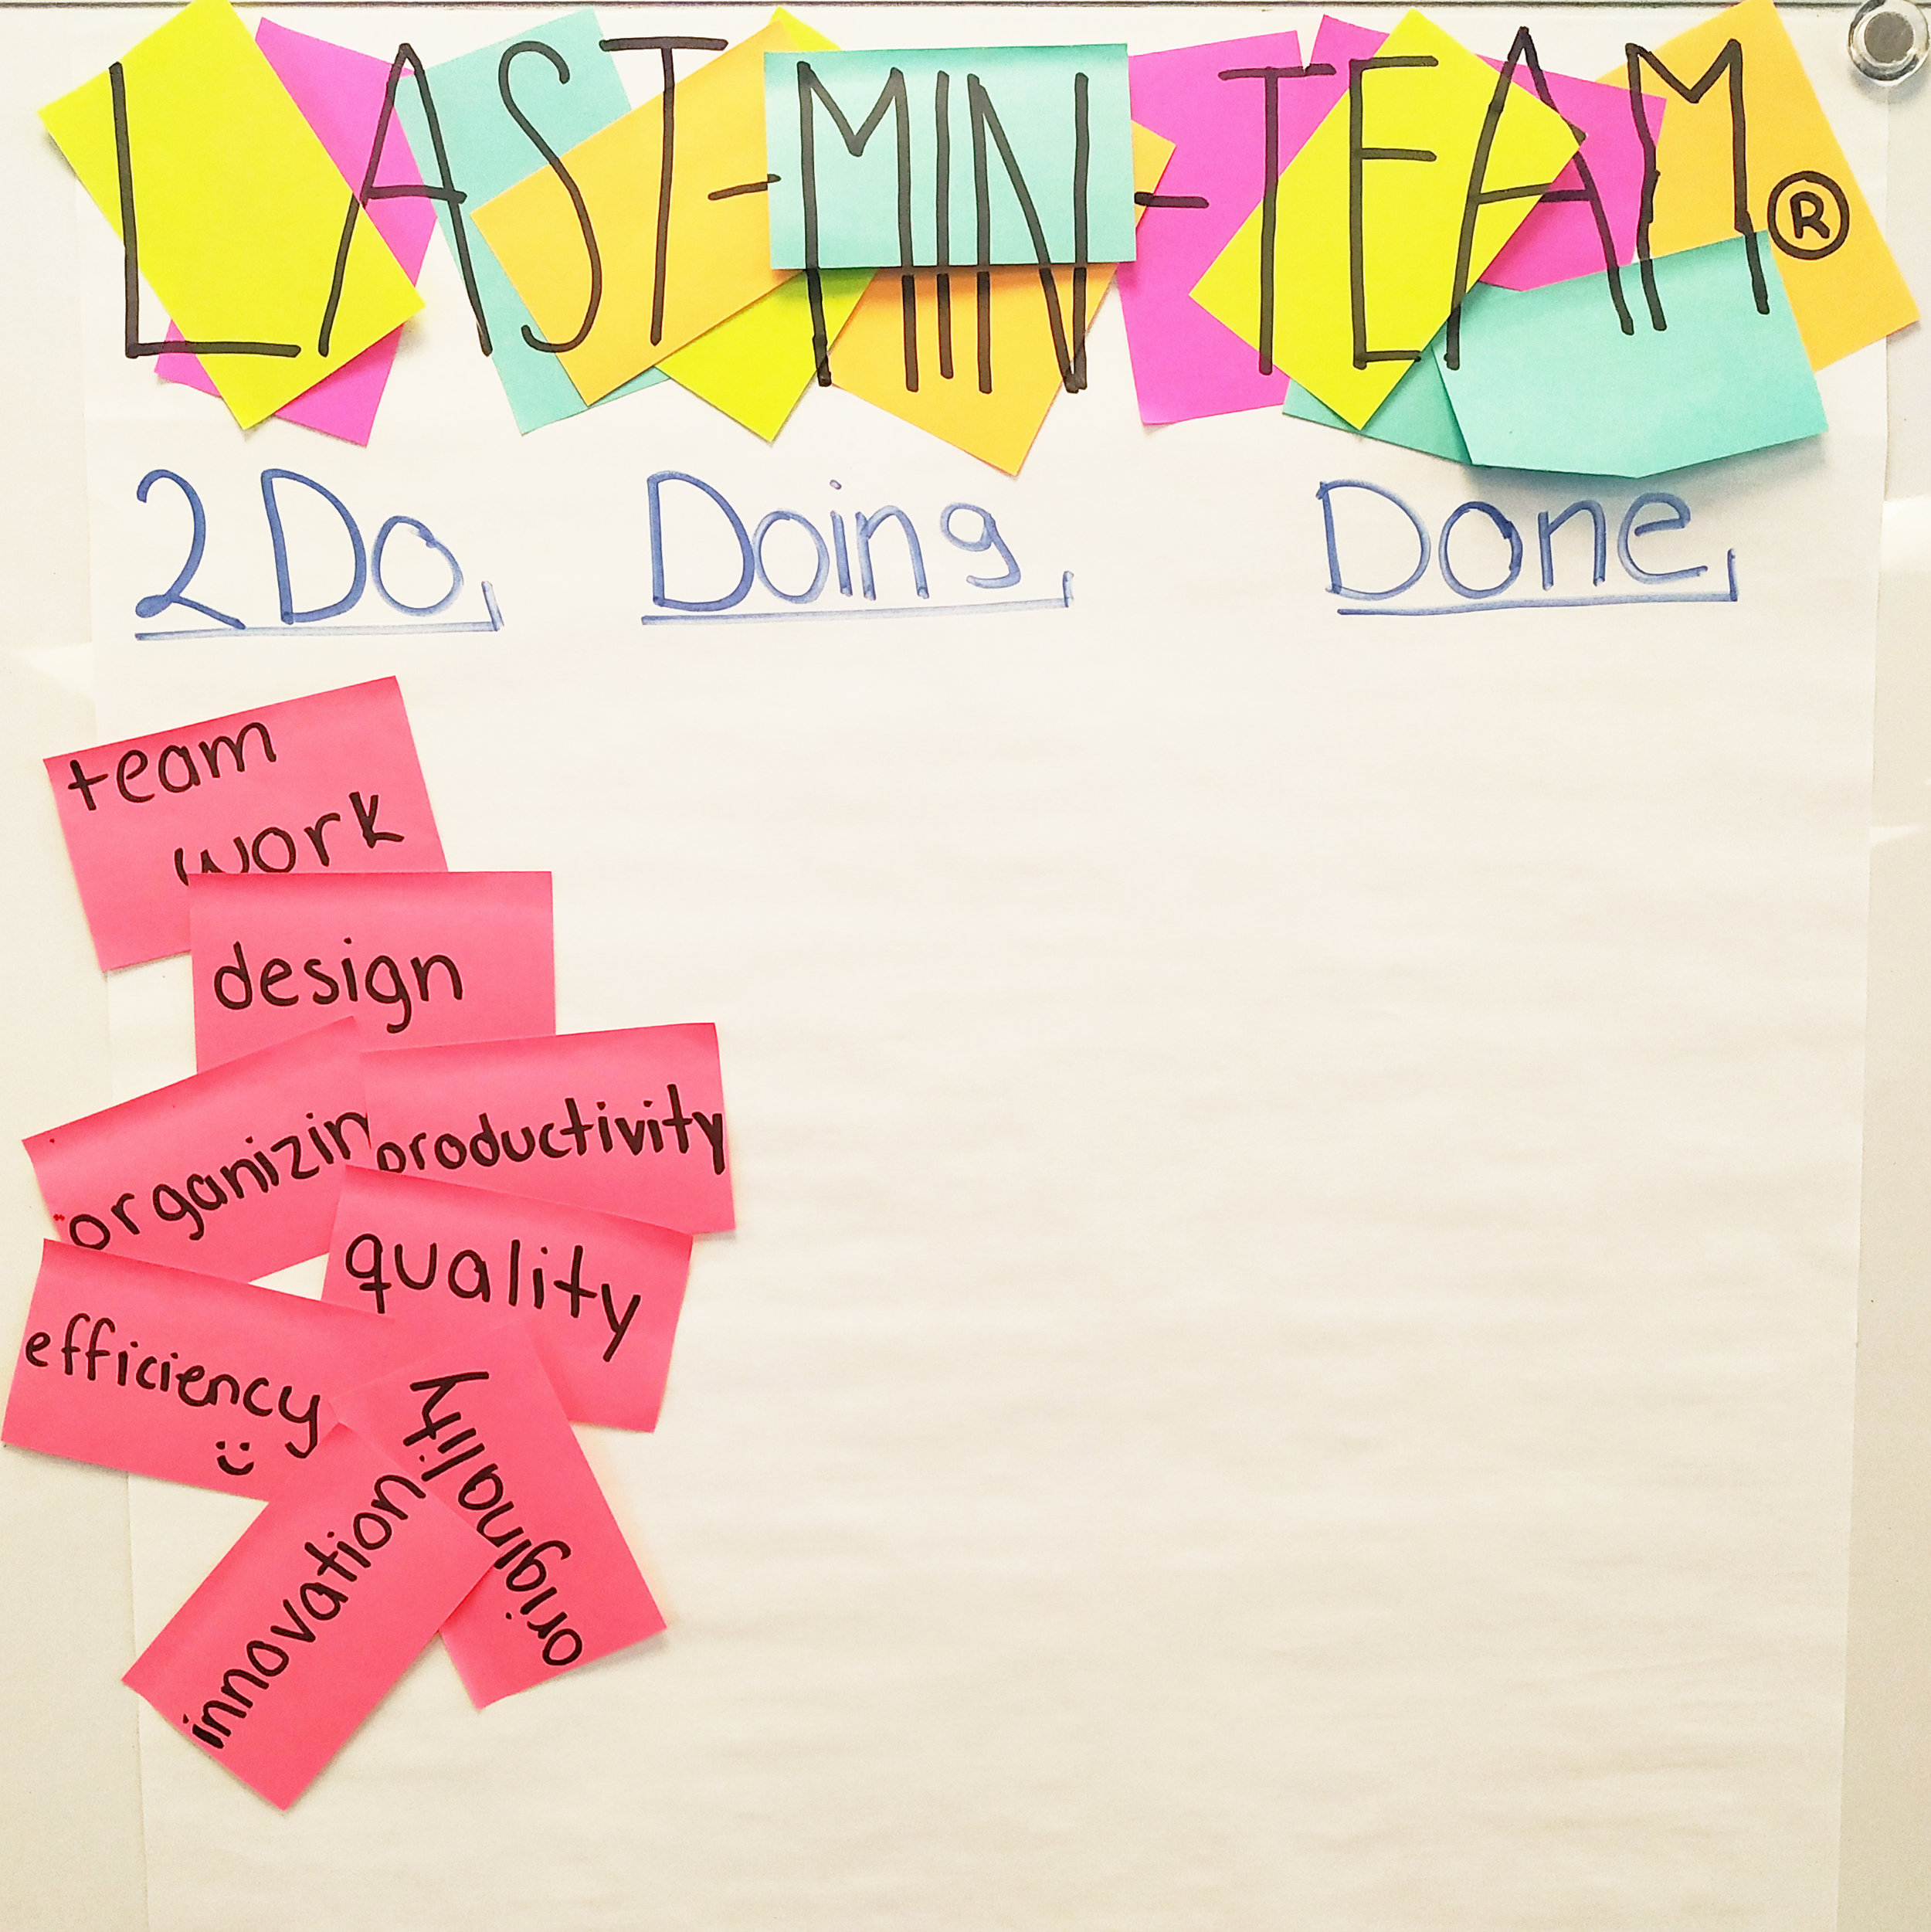 Scrum advises teams to organize objectives into three categories: to do, doing, and done